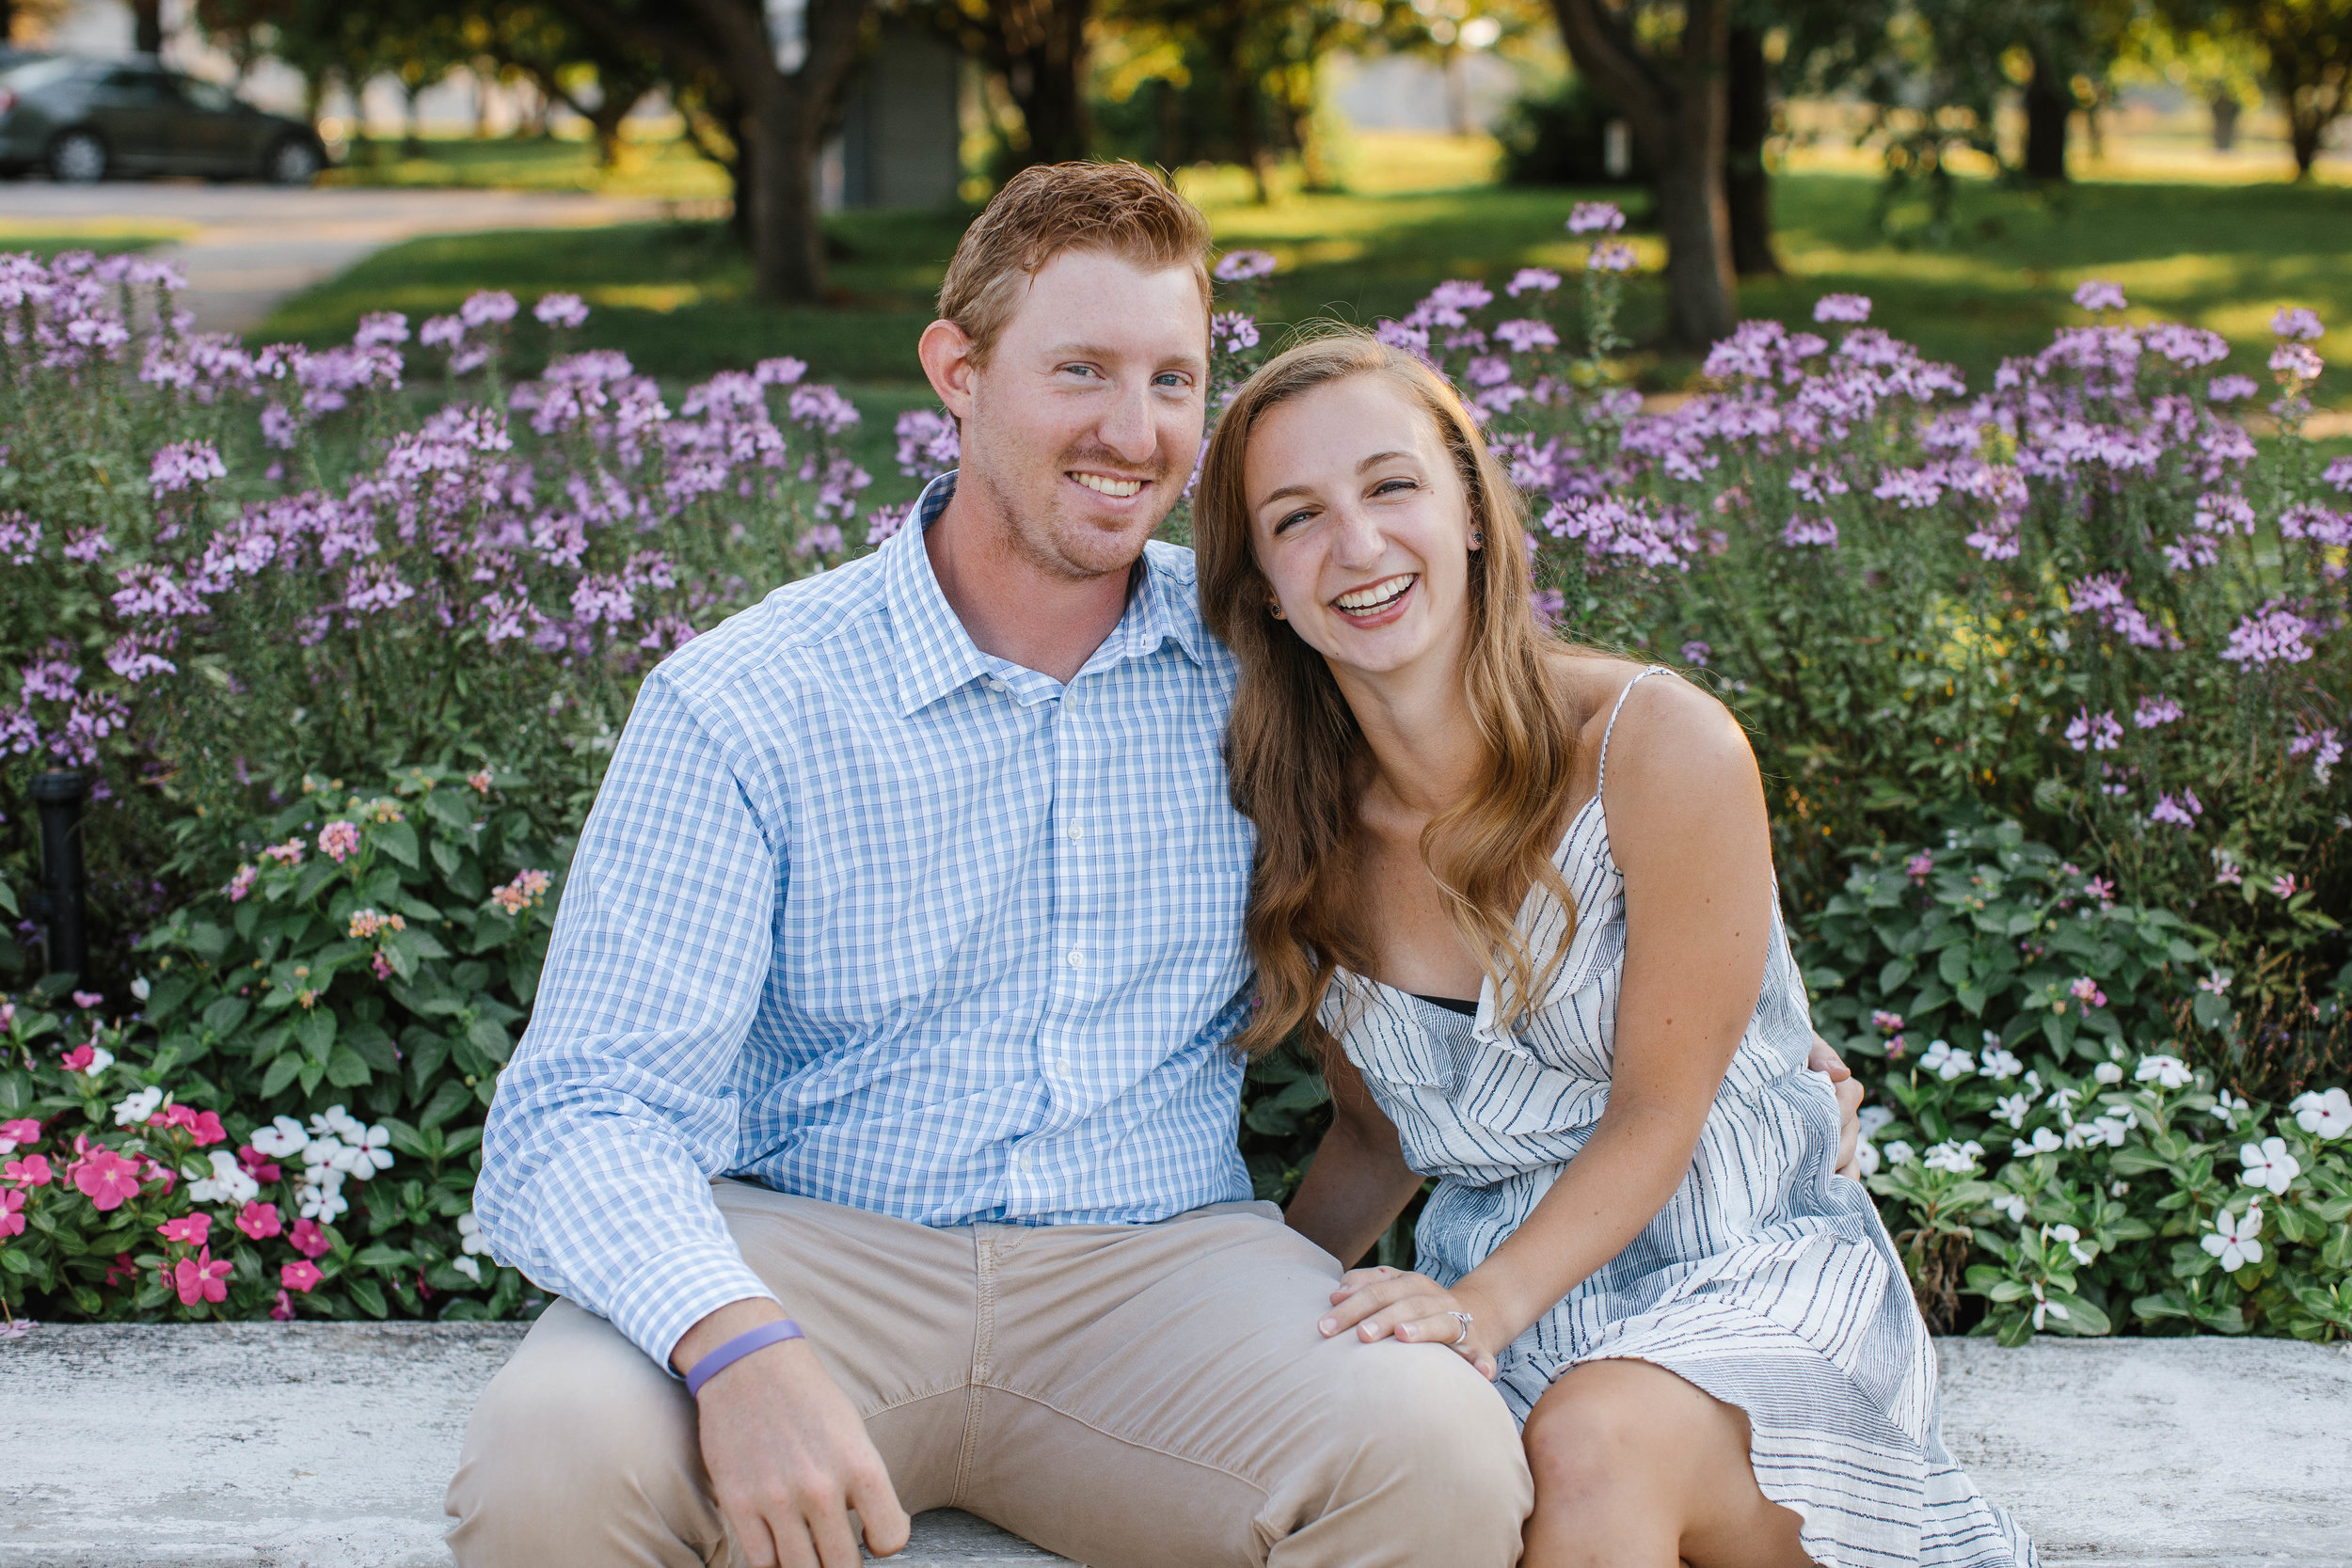 laughing during engagement photos